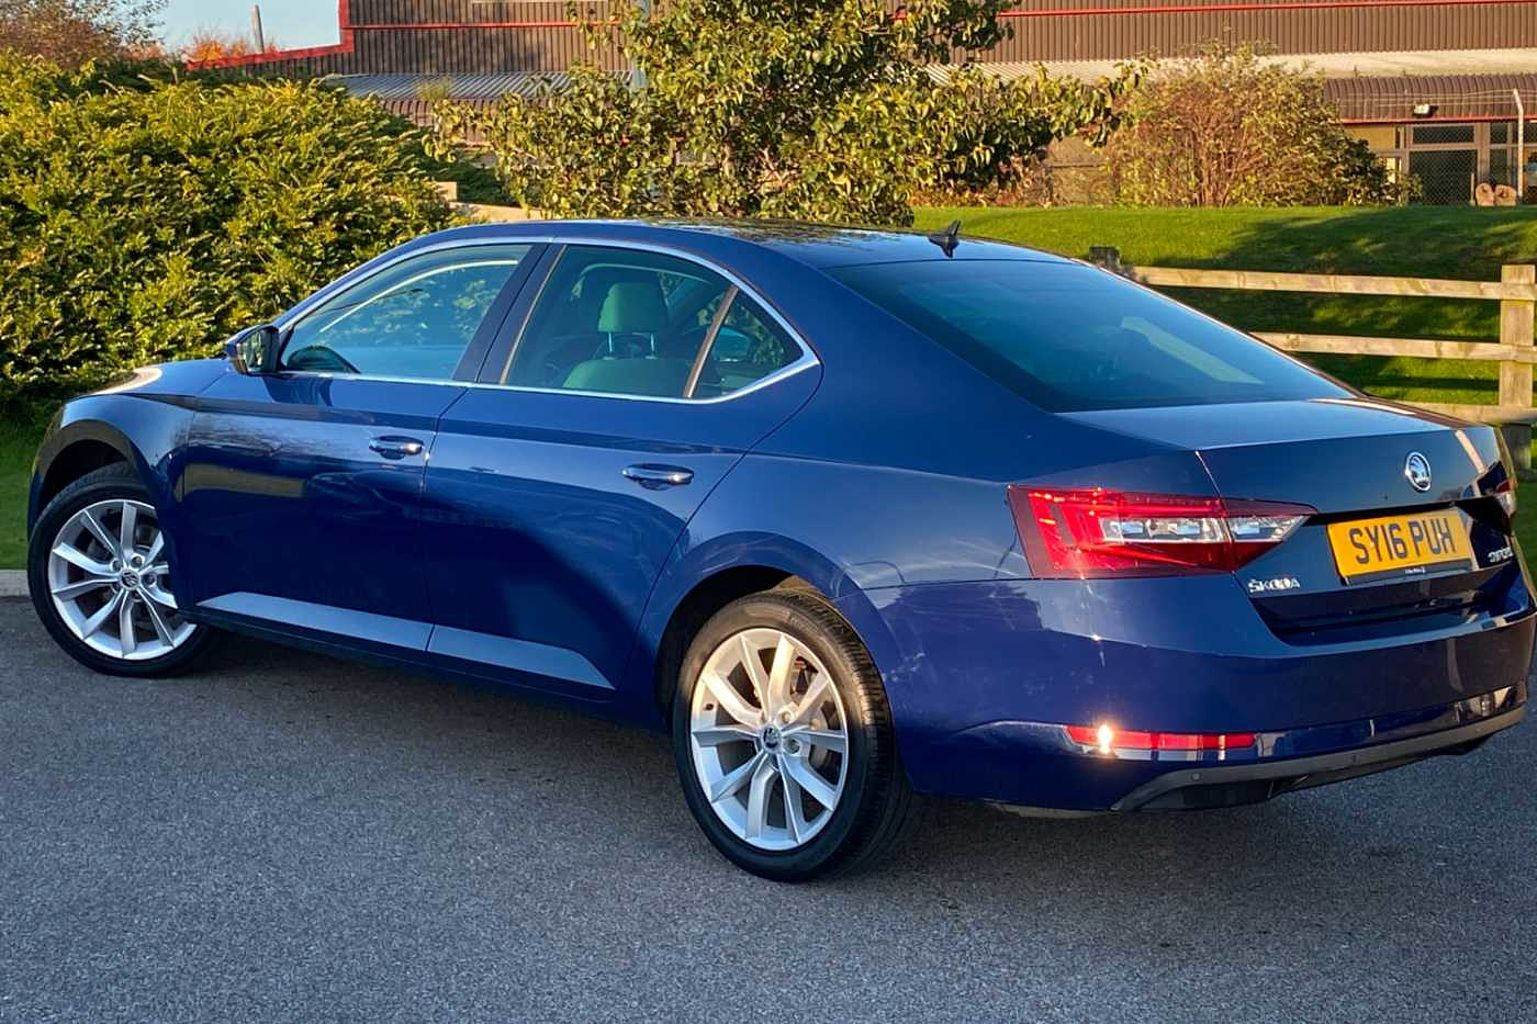 SKODA Superb 2.0 TSI 220ps SE L Executive DSG Hatchback